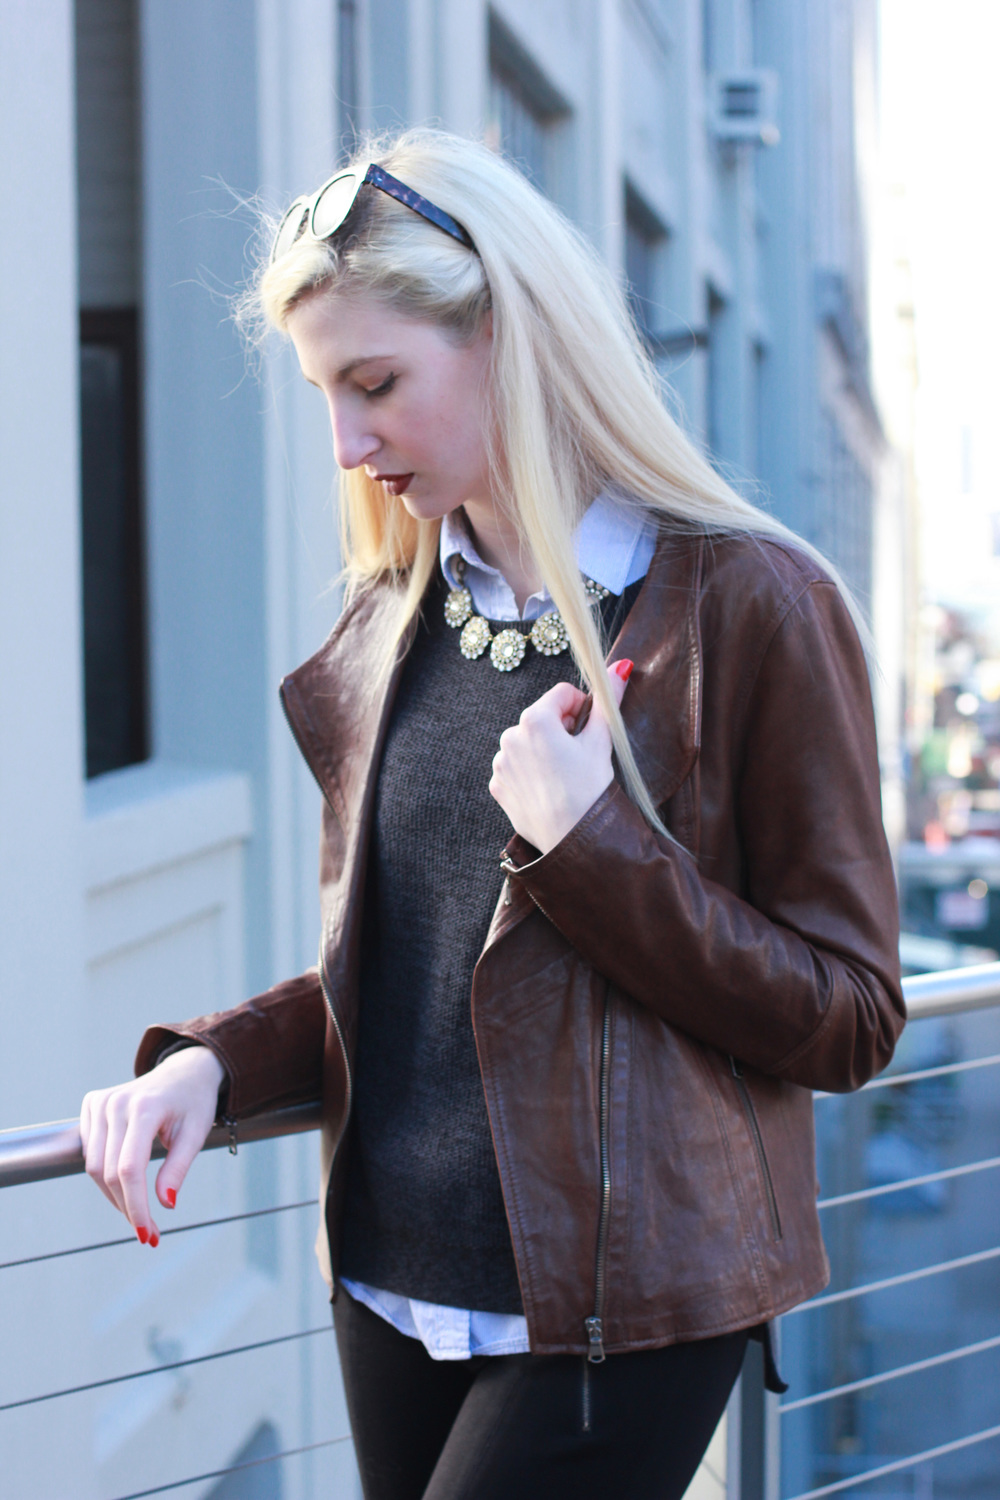 LOFT mixed media sweter, j.crew factory blue pinstripe classic button down, J.Crew Factory layered circle crystal statement necklace, brown leather jacket, J.Crew pixie snap front pants, brown leather ankle boots, Clinique Color pop lipstick in Cola Pop